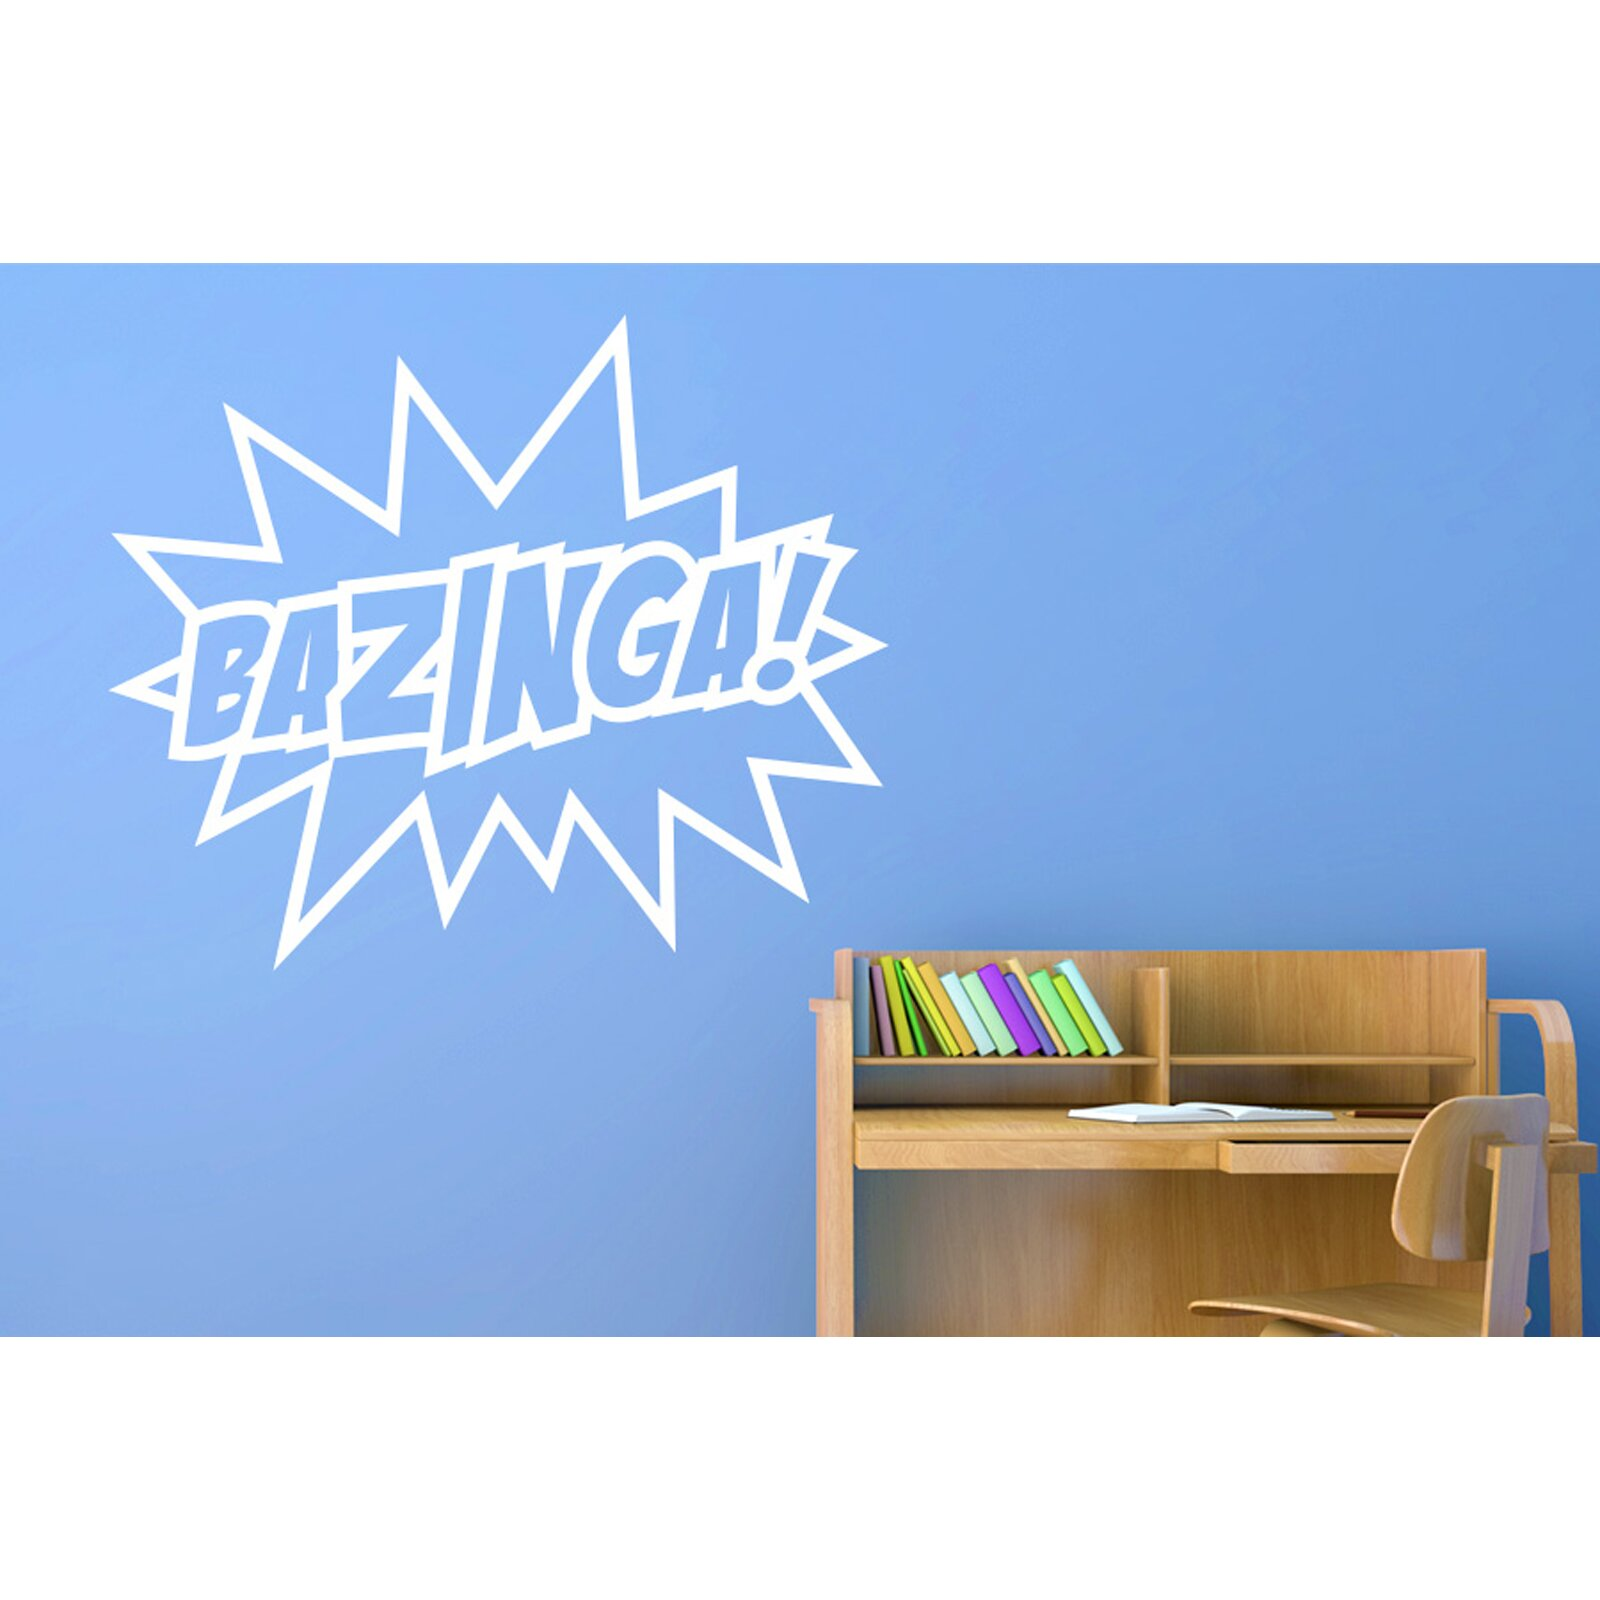 Quote Wall Stickers Next : Cut it out wall stickers bazinga sheldon quote from the